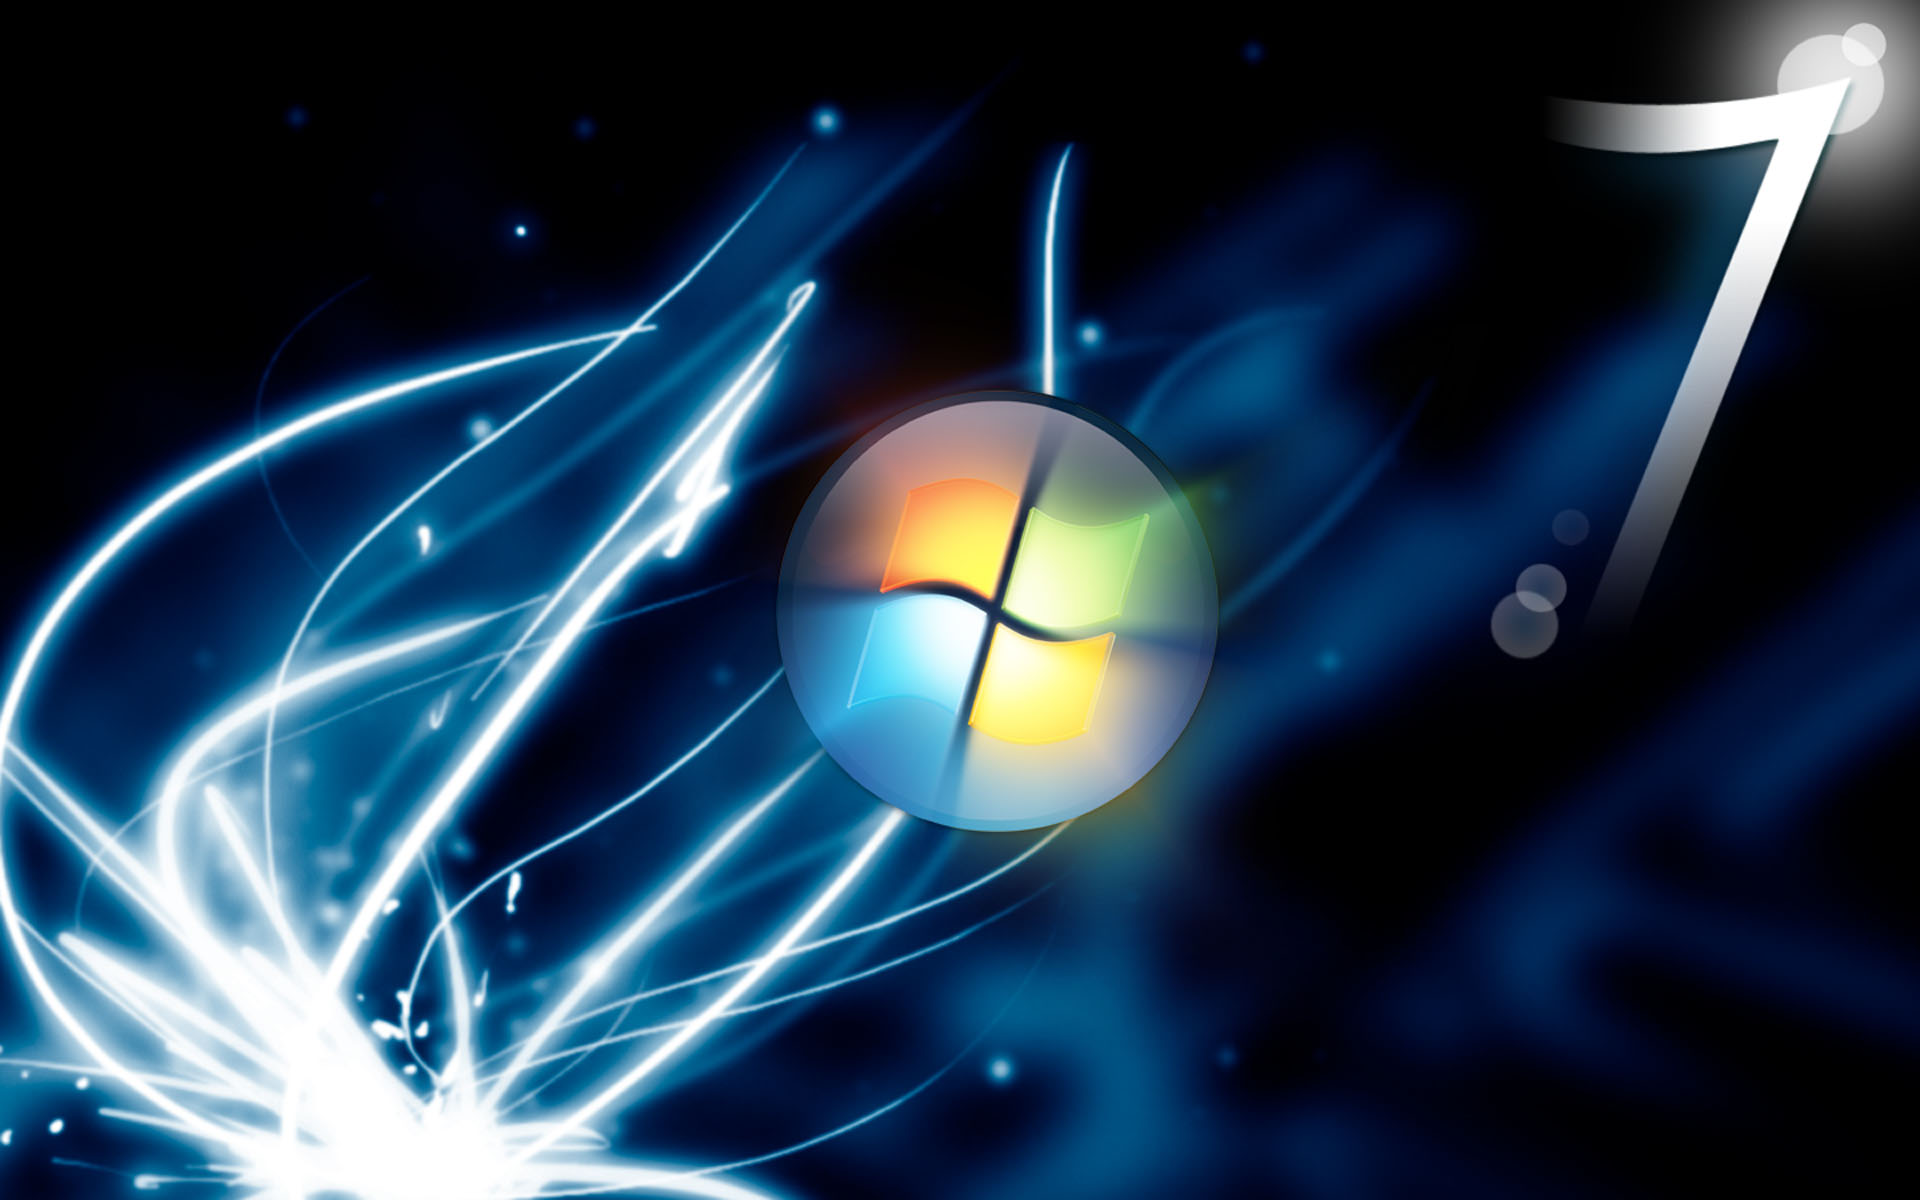 Cool Windows 7 Desktop